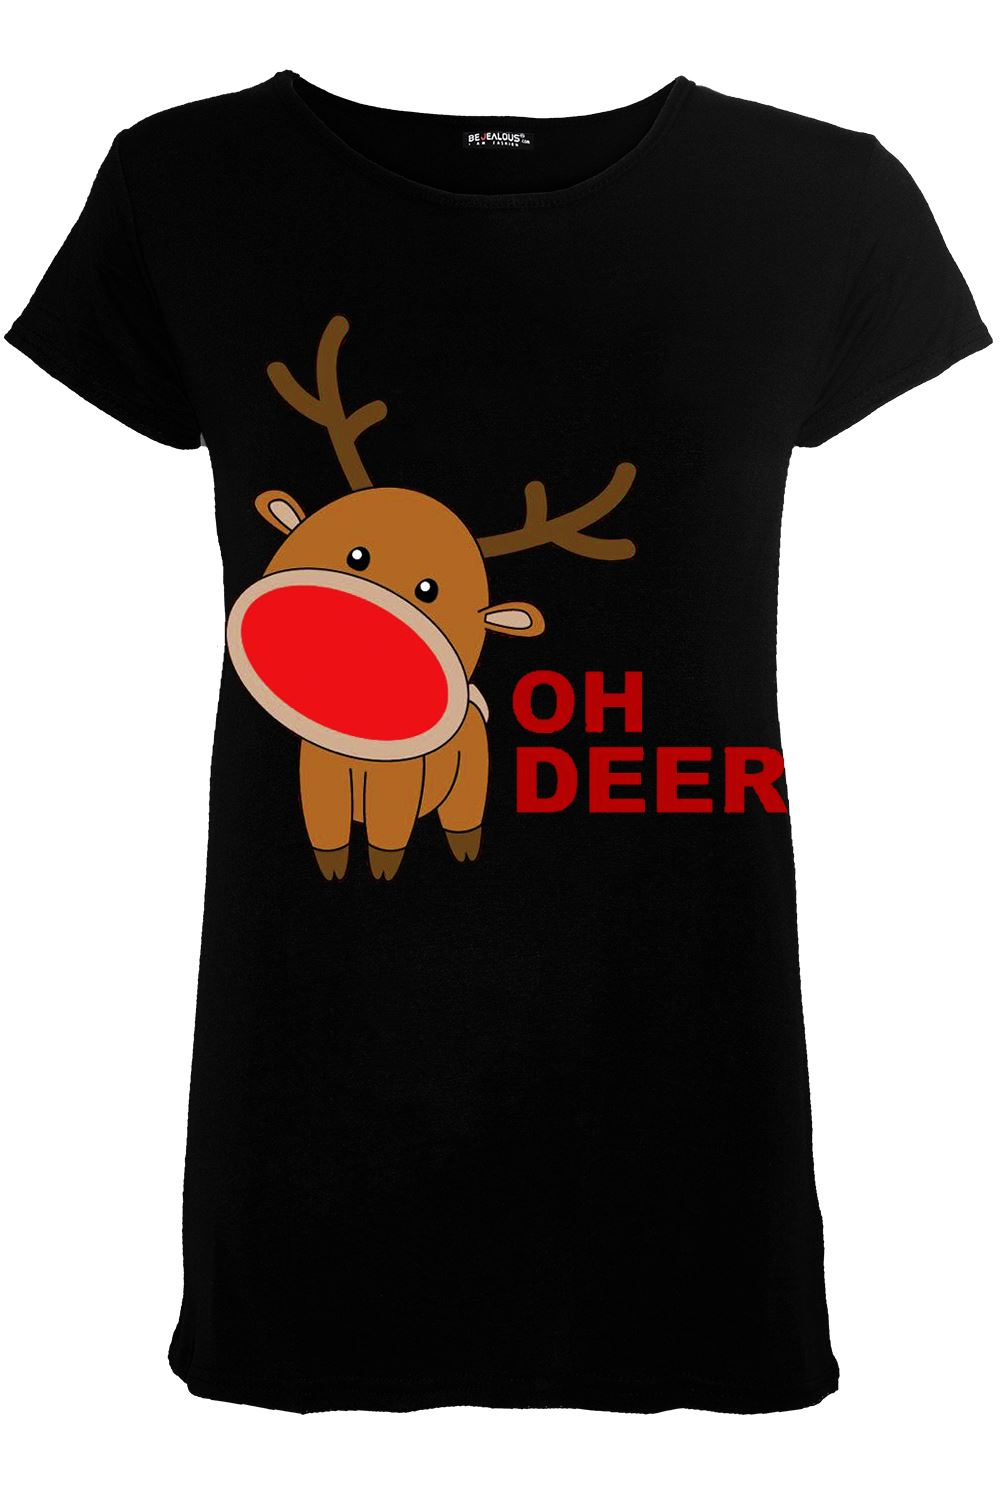 New-Women-Ladies-Cap-Sleeve-Xmas-Gingerbread-Hat-Candy-Printed-Christmas-T-Shirt